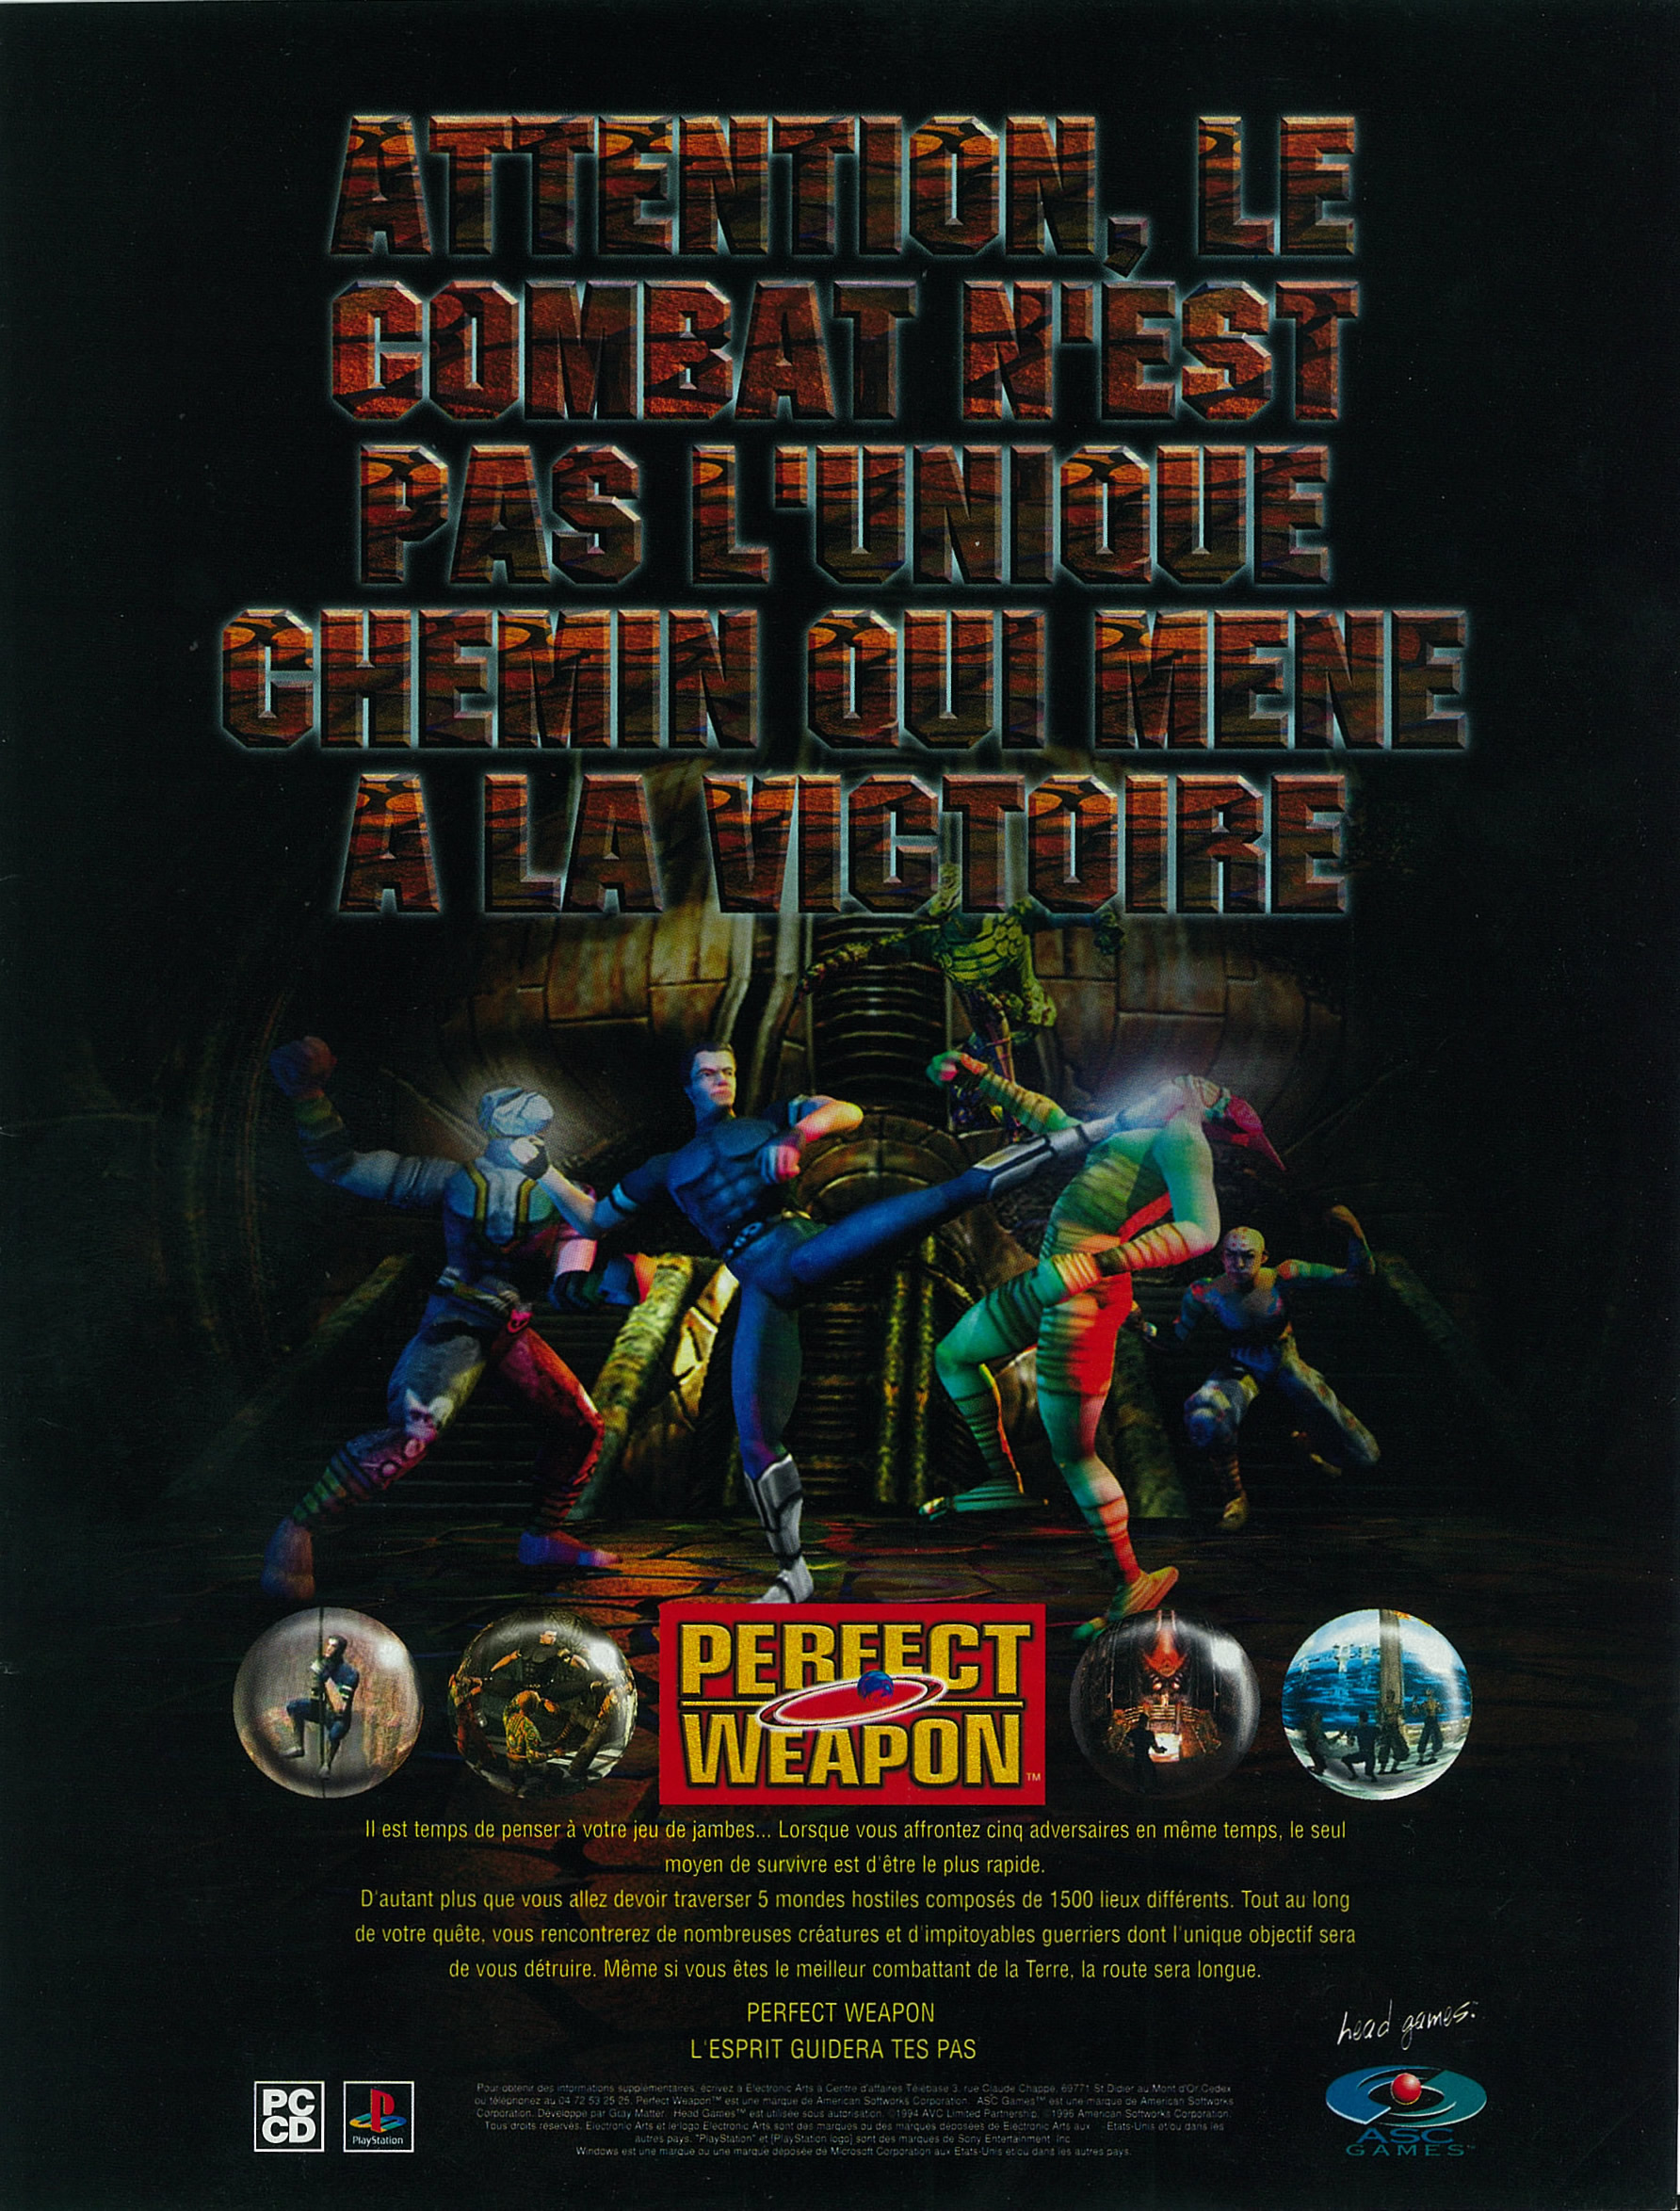 Perfect weapon Consoles%20%2B%20064%20-%20Page%20039%20(avril%201997)